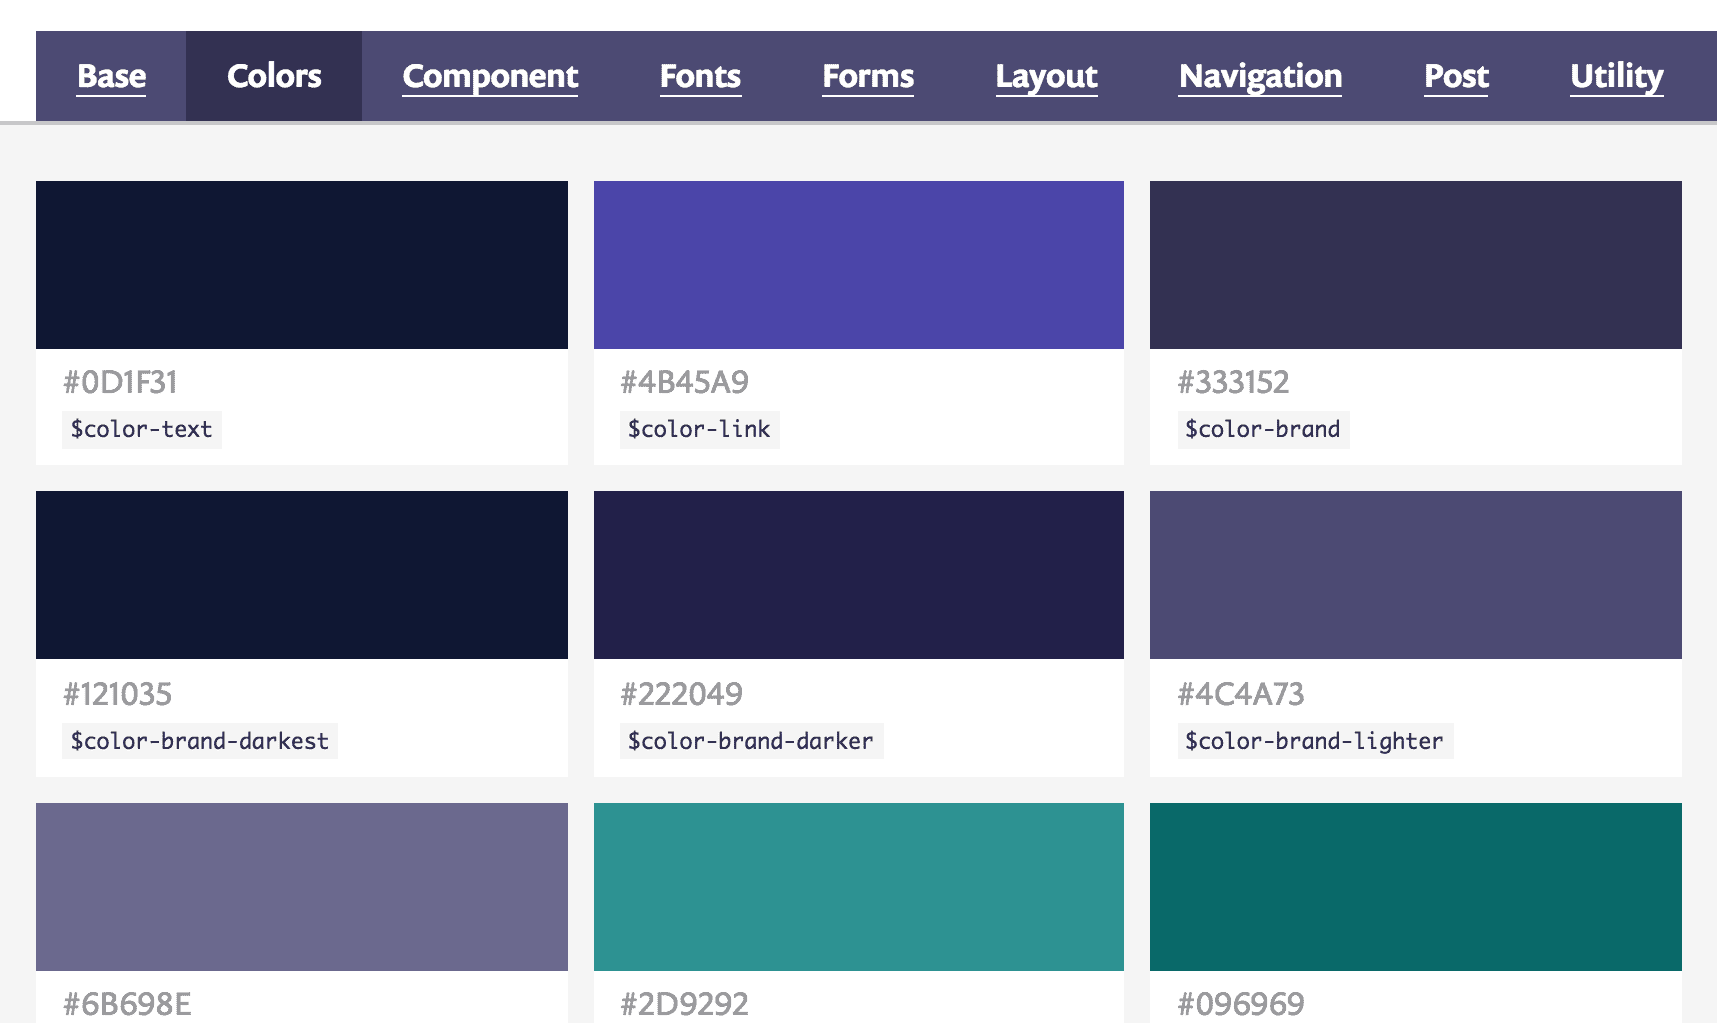 A screenshot of the colour swatches on the style guide